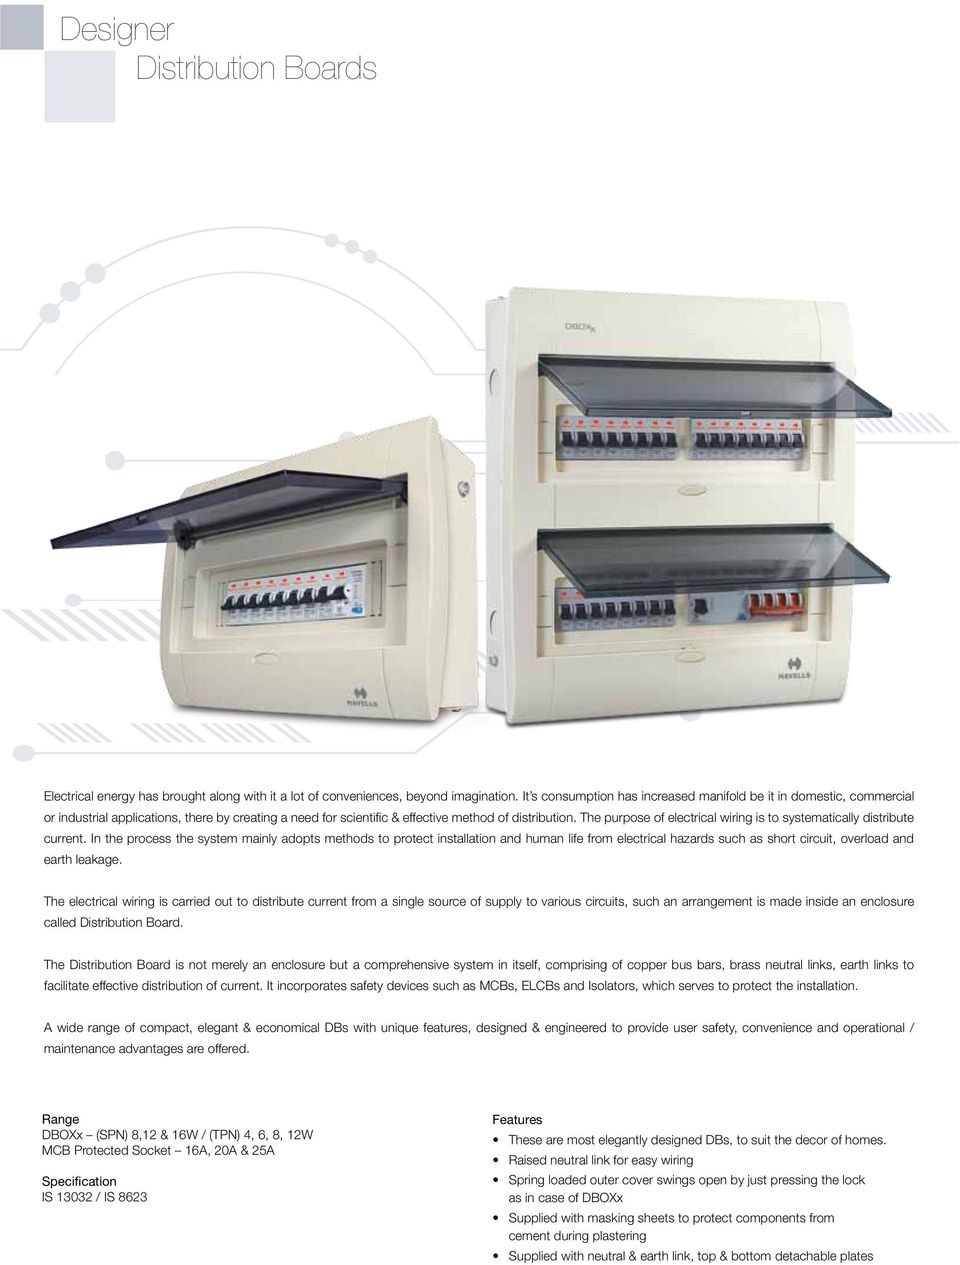 Building Circuit Protection Pdf Enclosure Wiring Methods The Purpose Of Electrical Is To Systematically Distribute Current